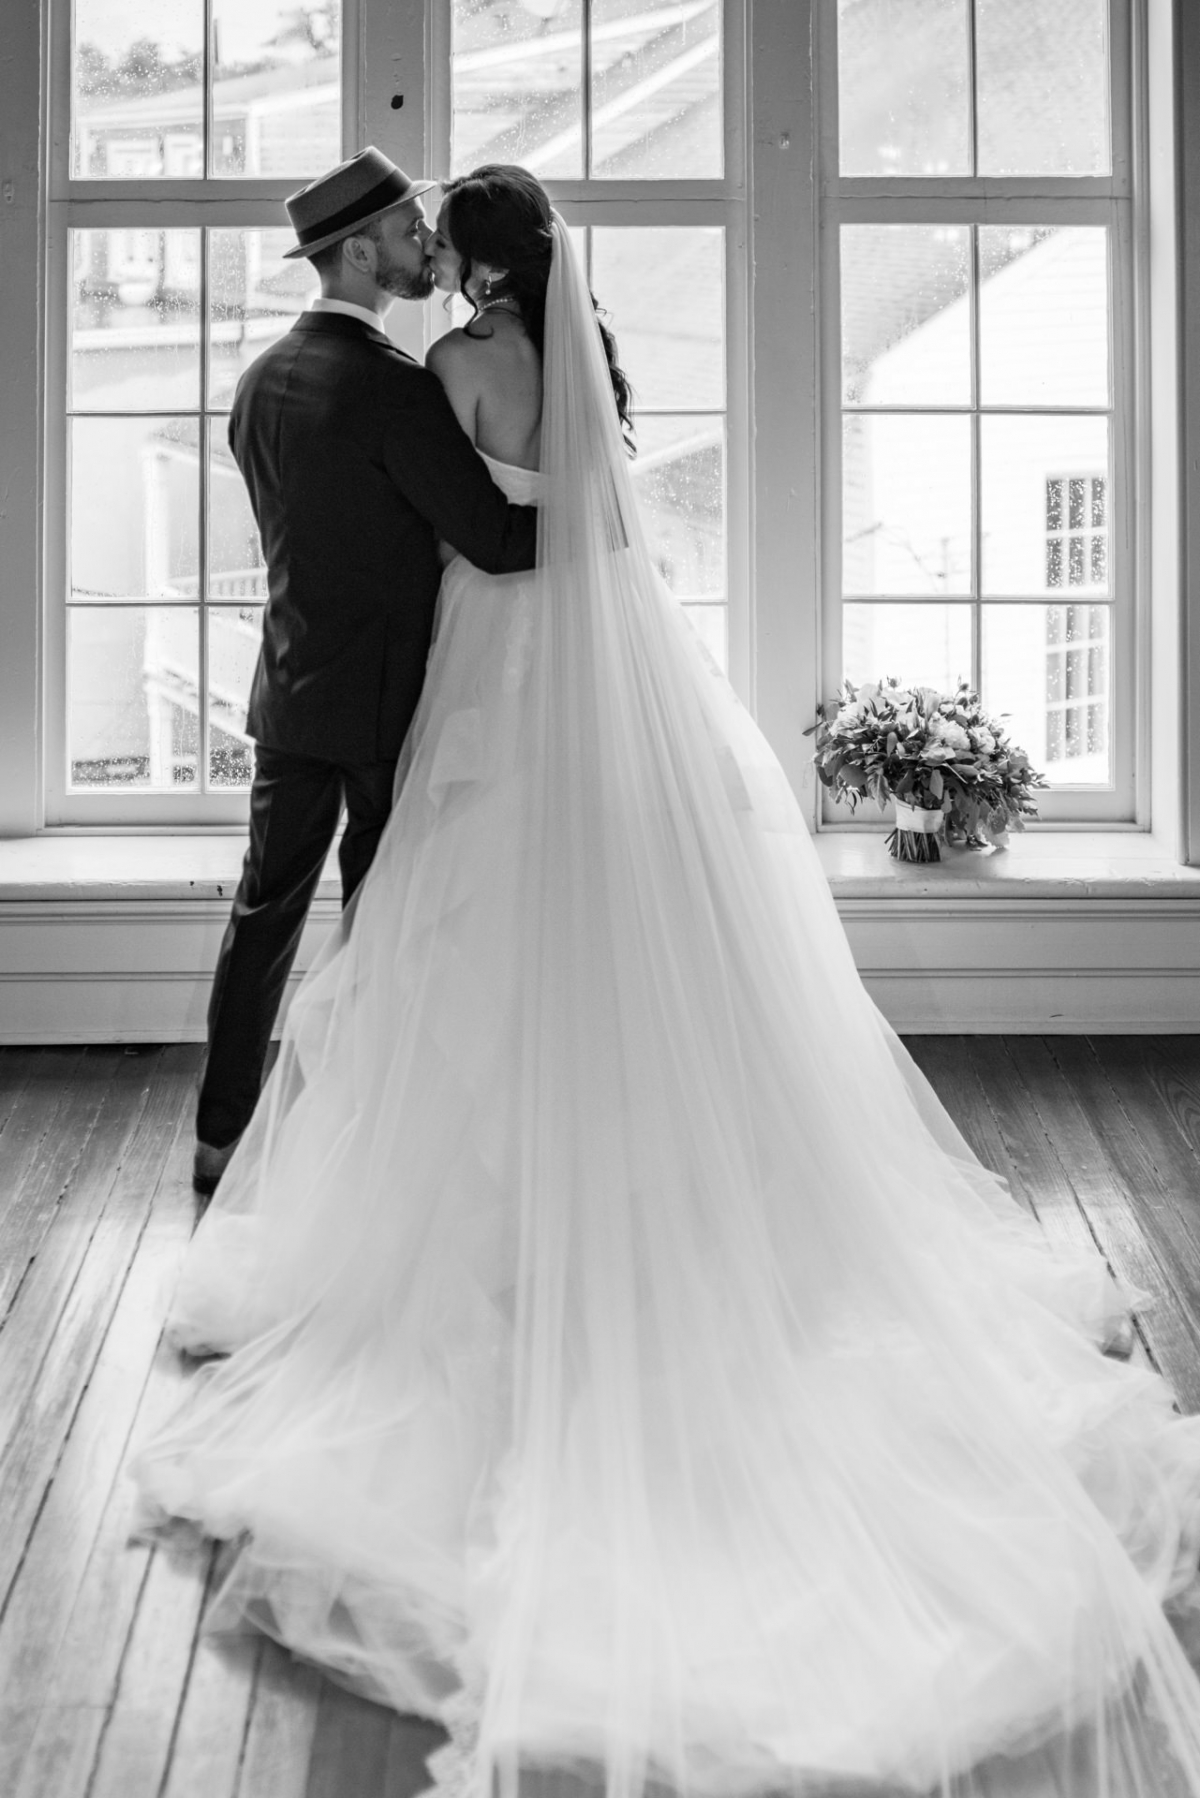 the wedding couple by wedding photographer Mike Riley